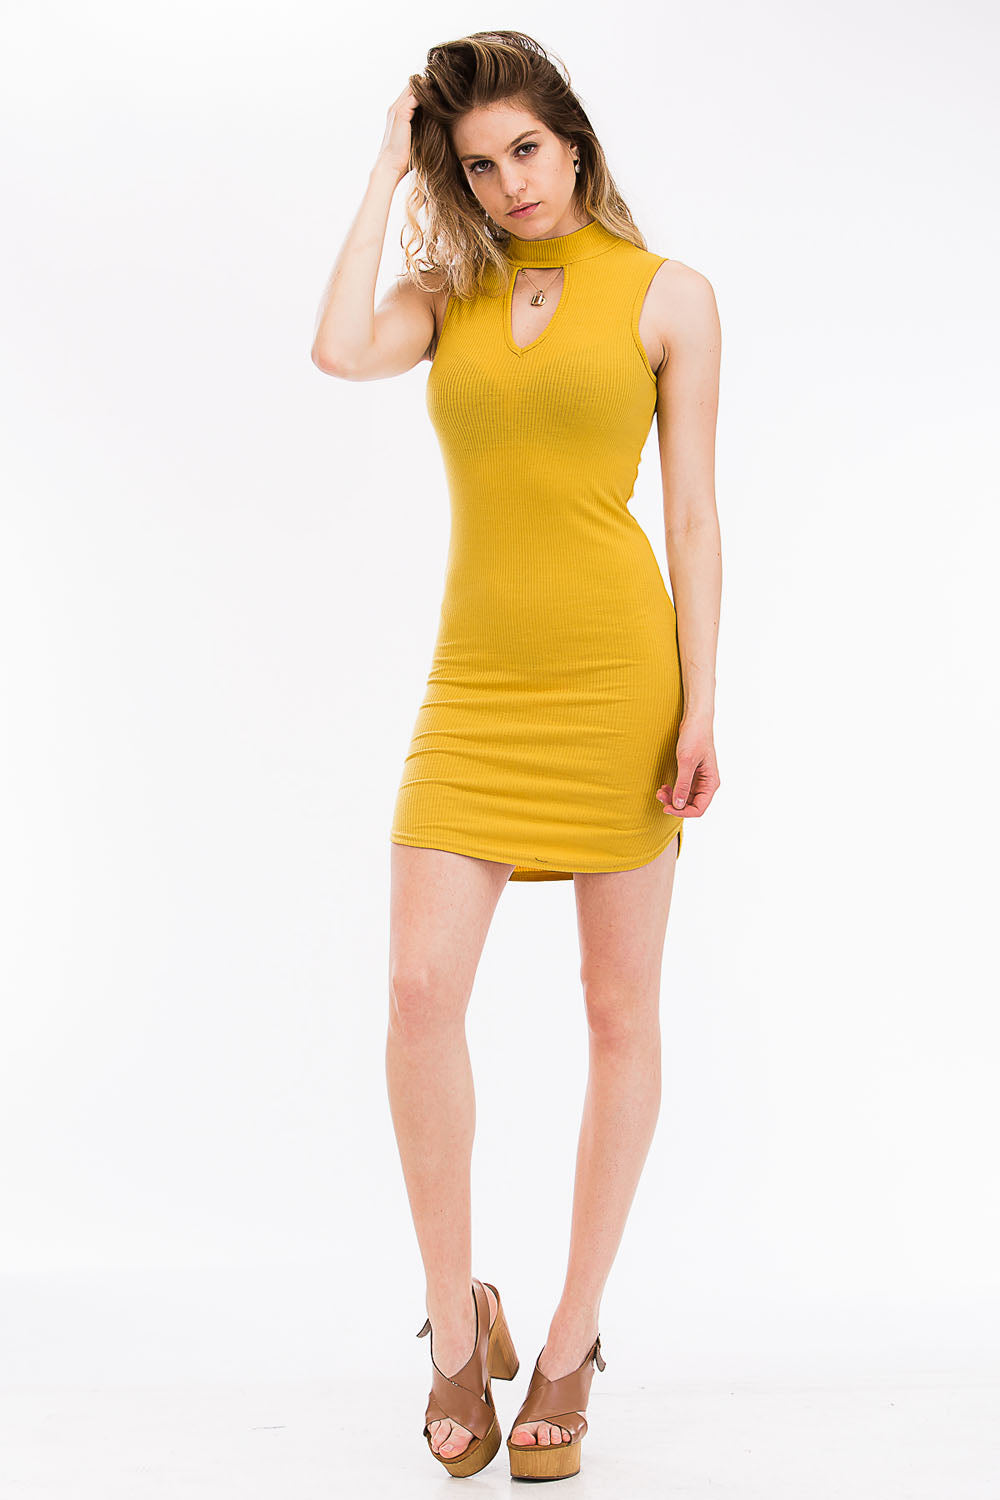 Dress - BD2061 - Capella Apparel